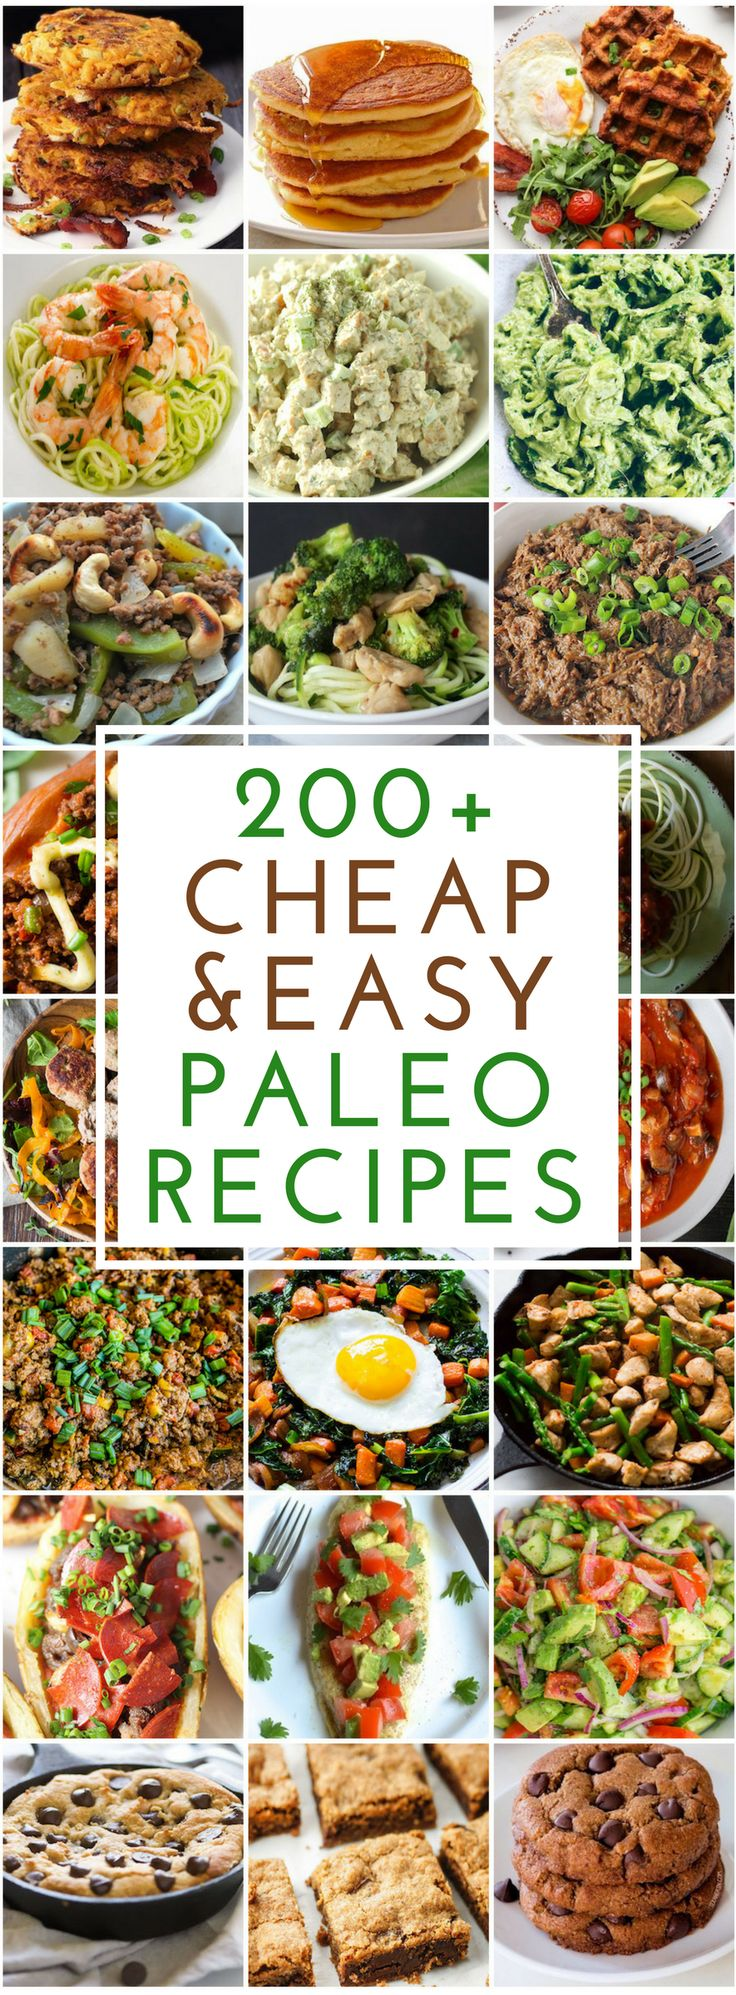 paleo recipes